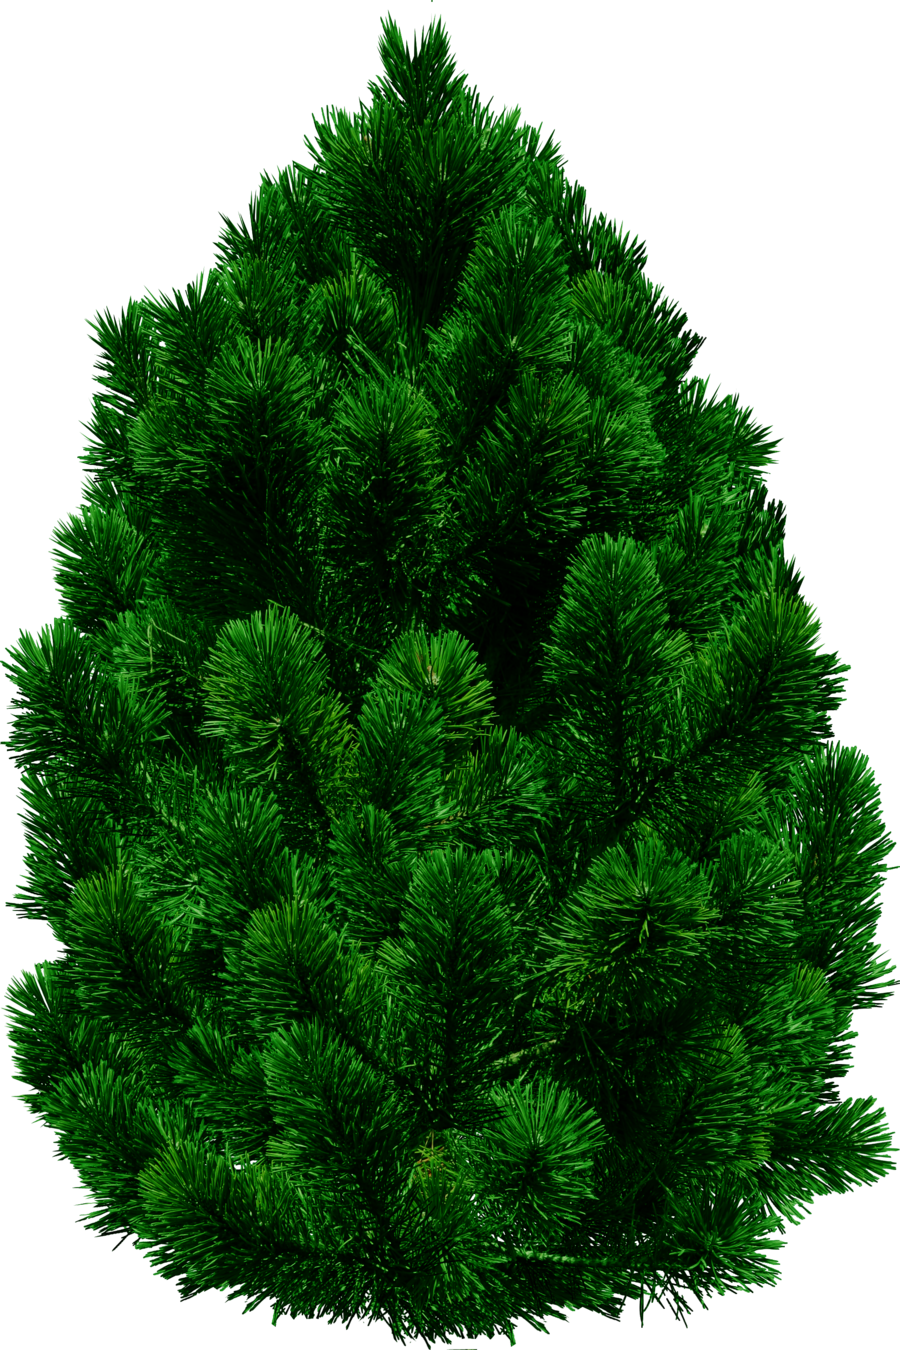 tree png image, free download, picture